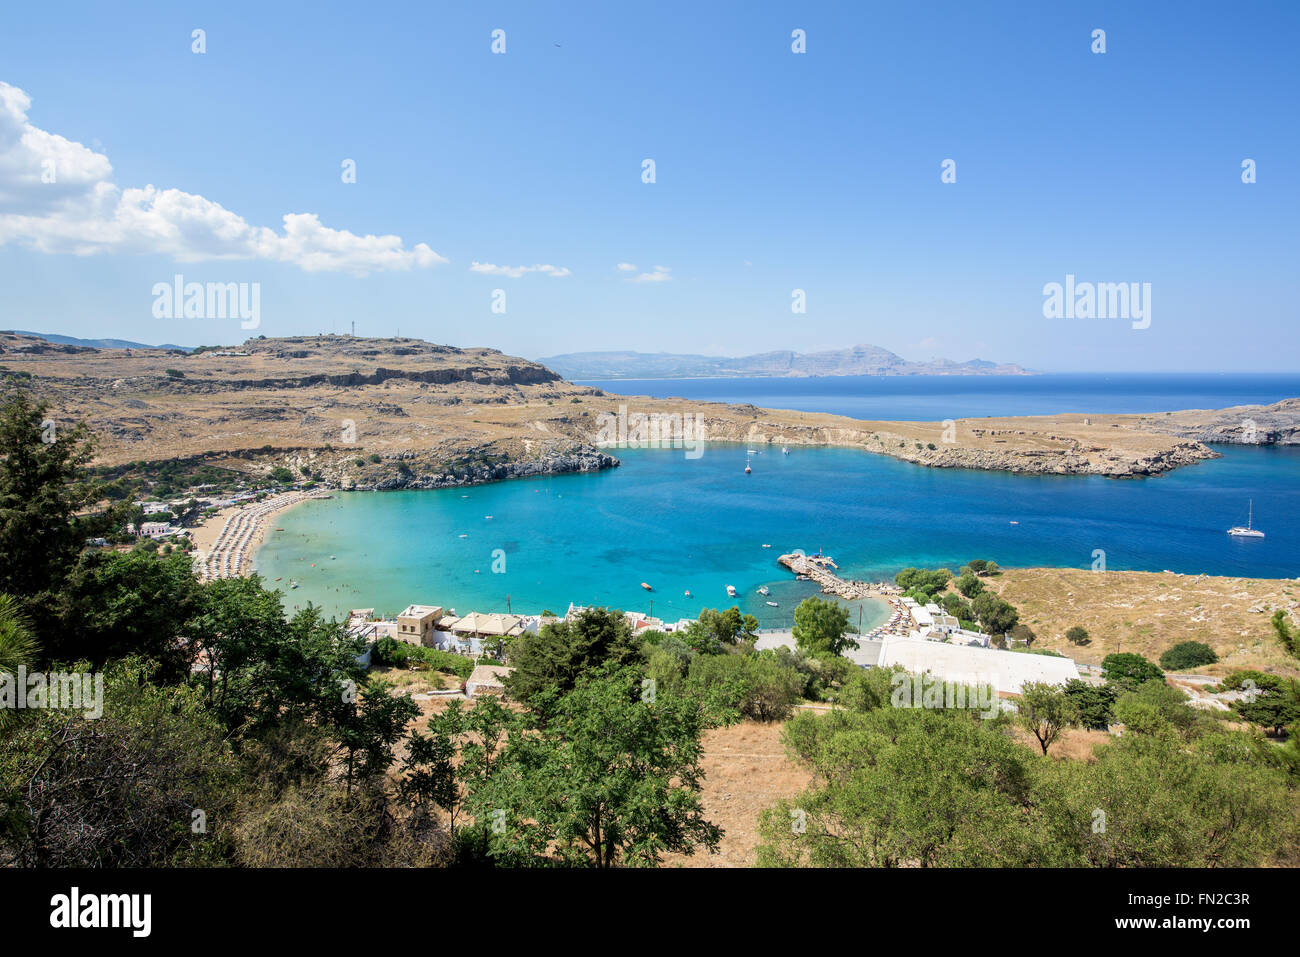 Bay in a city of Lindos on Rhodos island - Stock Image